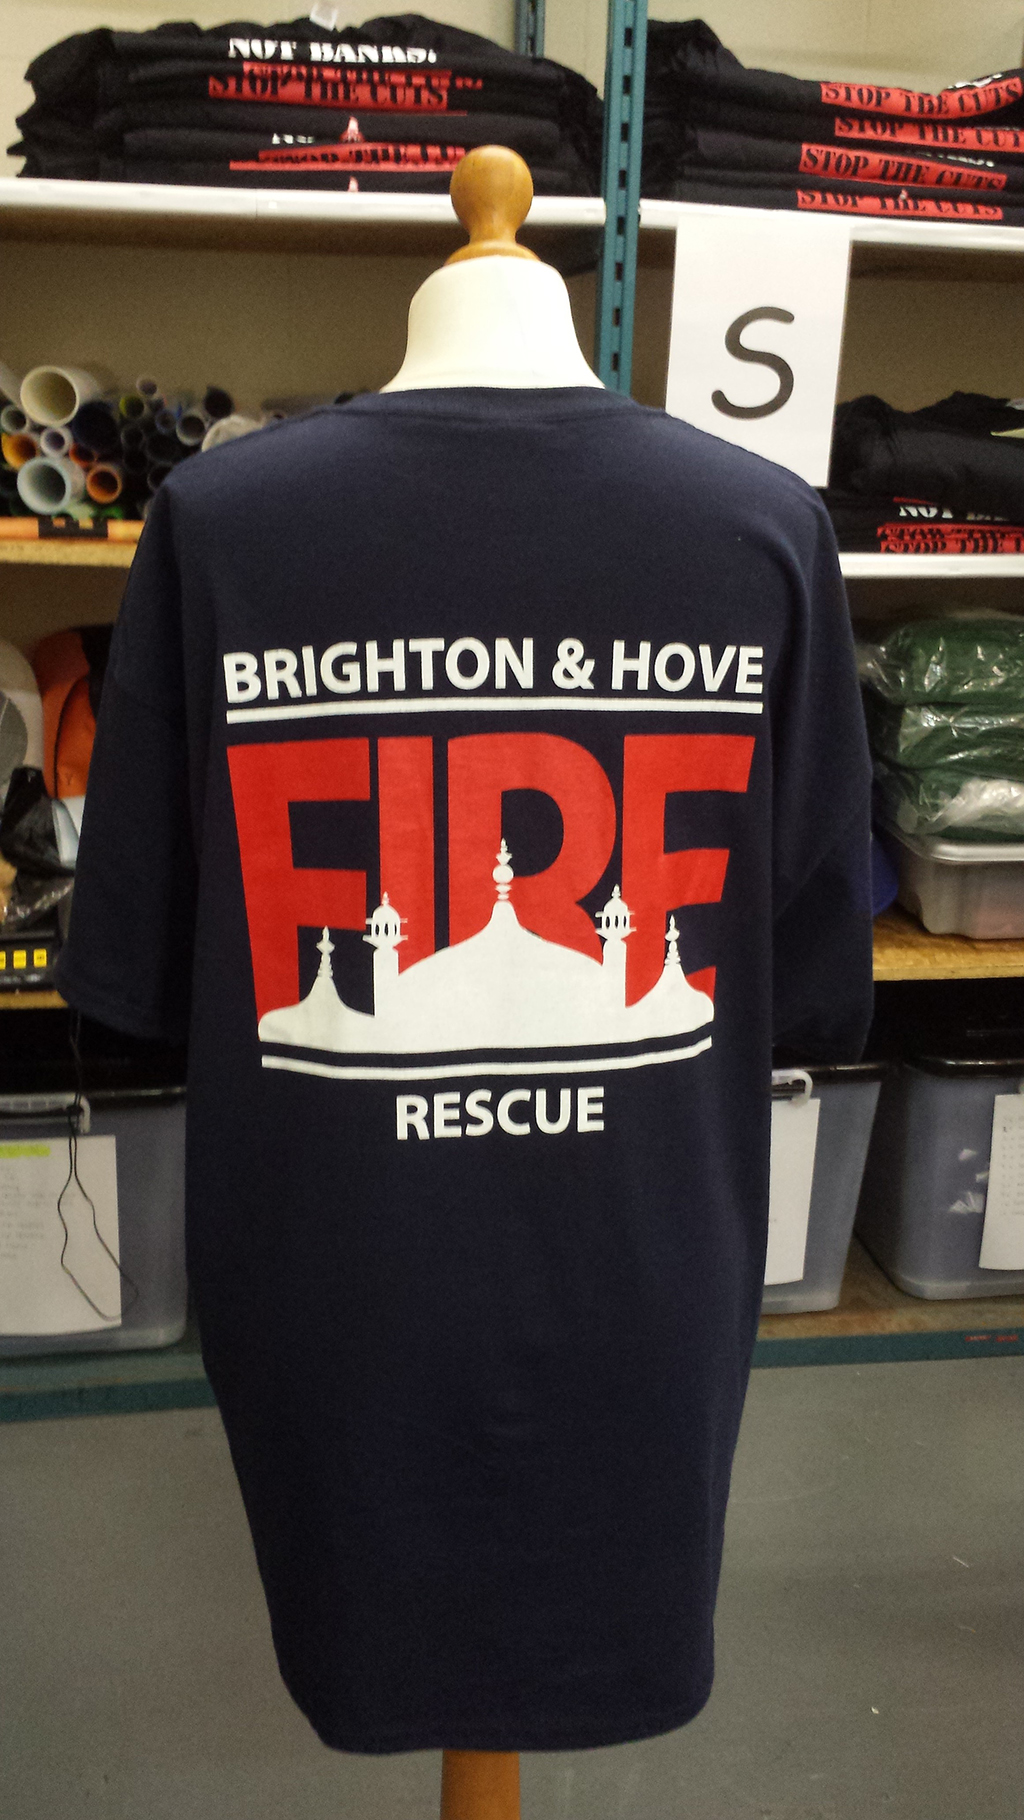 Brighton & Hove Fire